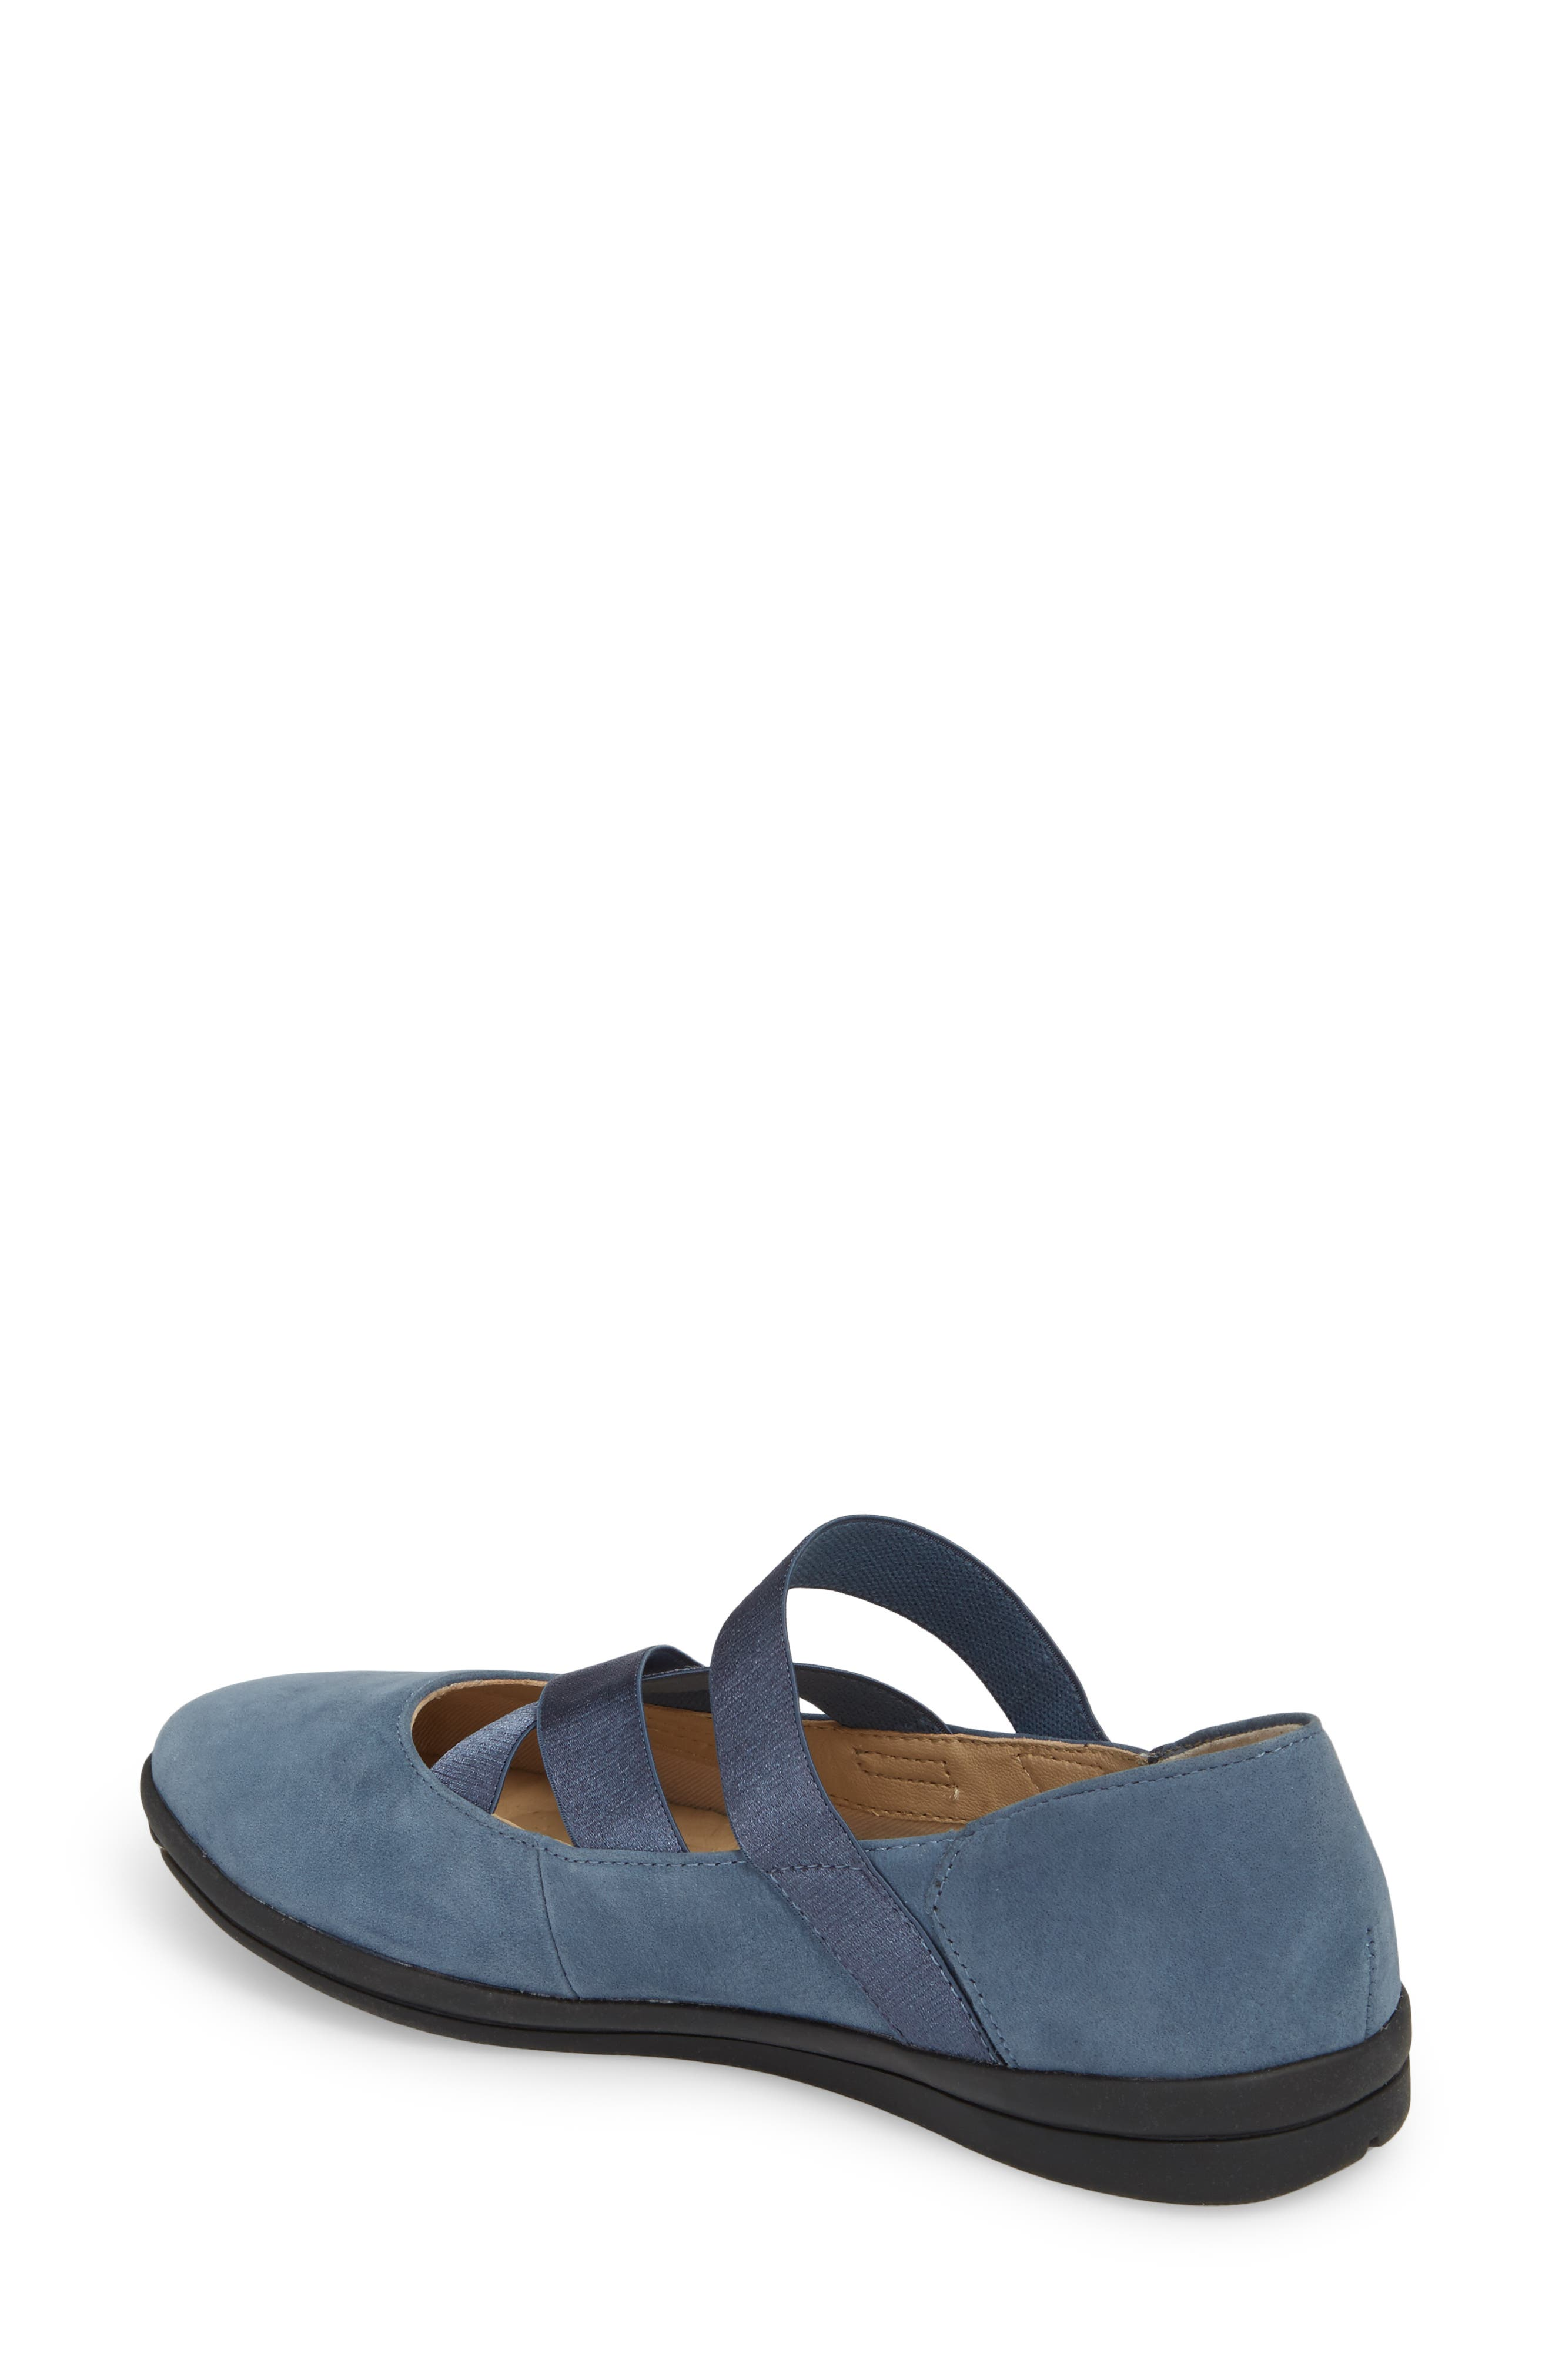 Meree Madrine Cross Strap Flat,                             Alternate thumbnail 2, color,                             Vintage Indigo Nubuck Leather